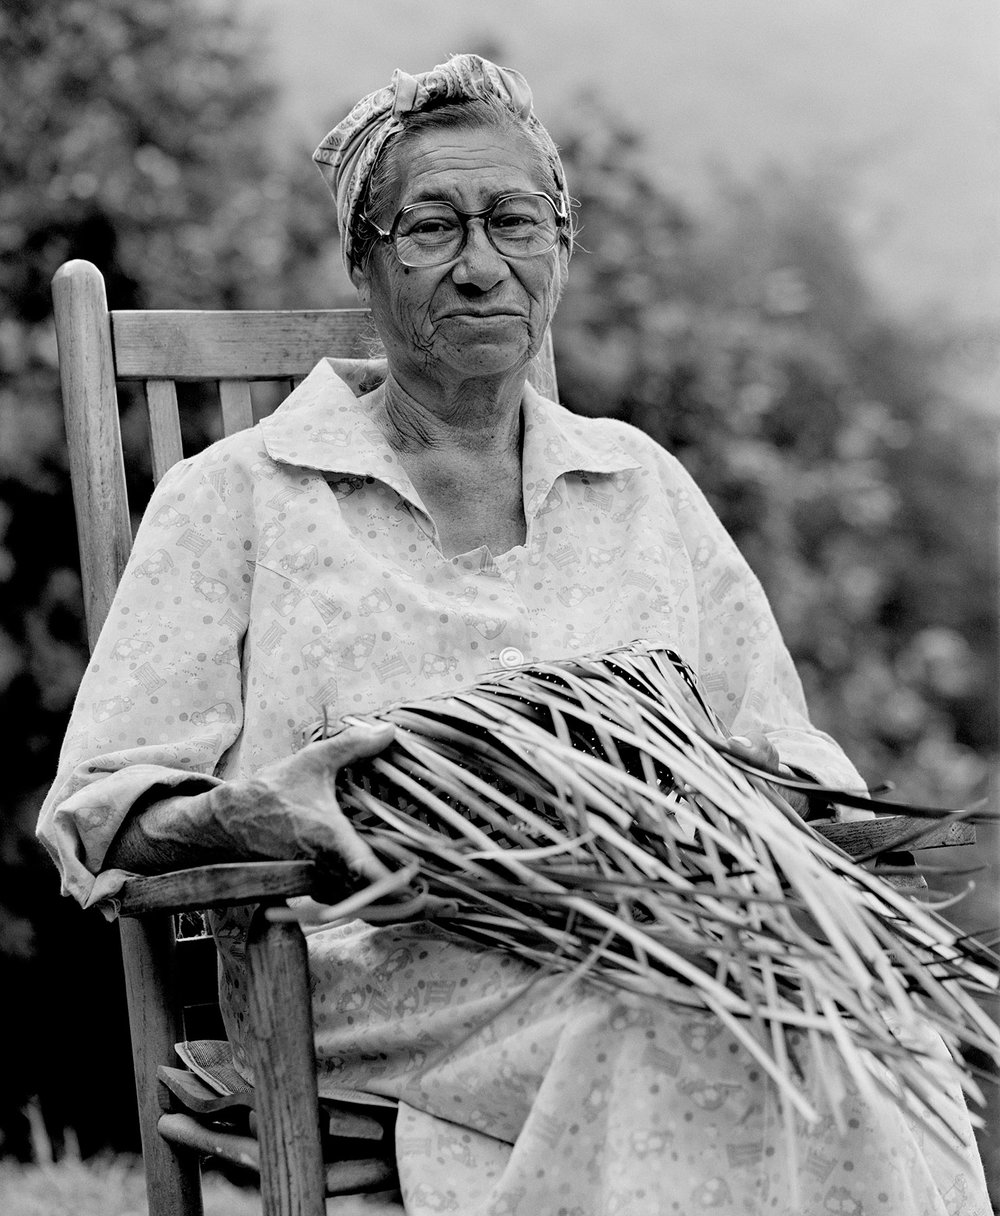 Eva Wolfe basket Cherokee Indian On Earth's Furrowed Brow Tim Barnwell photographer